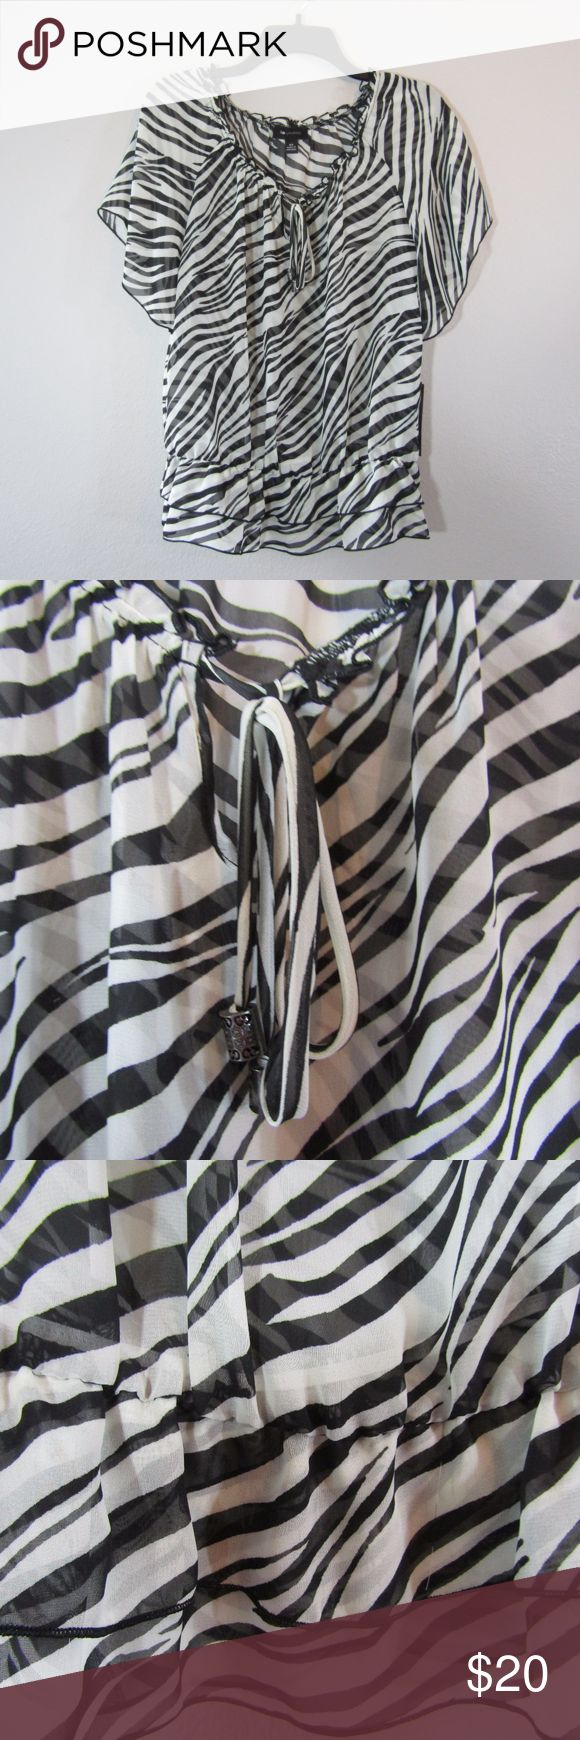 Beautiful sheer black + white zebra stripe pattern NWT AB STUDIO -   So cute and perfect dressed up or down!  Measurements:  20 inches armpit to armpit 19.75 inches middle of collar to bottom hem 24 inches shoulder to bottom hem 5.75 inches armpit to end of sleeve AB Studio Tops Blouses